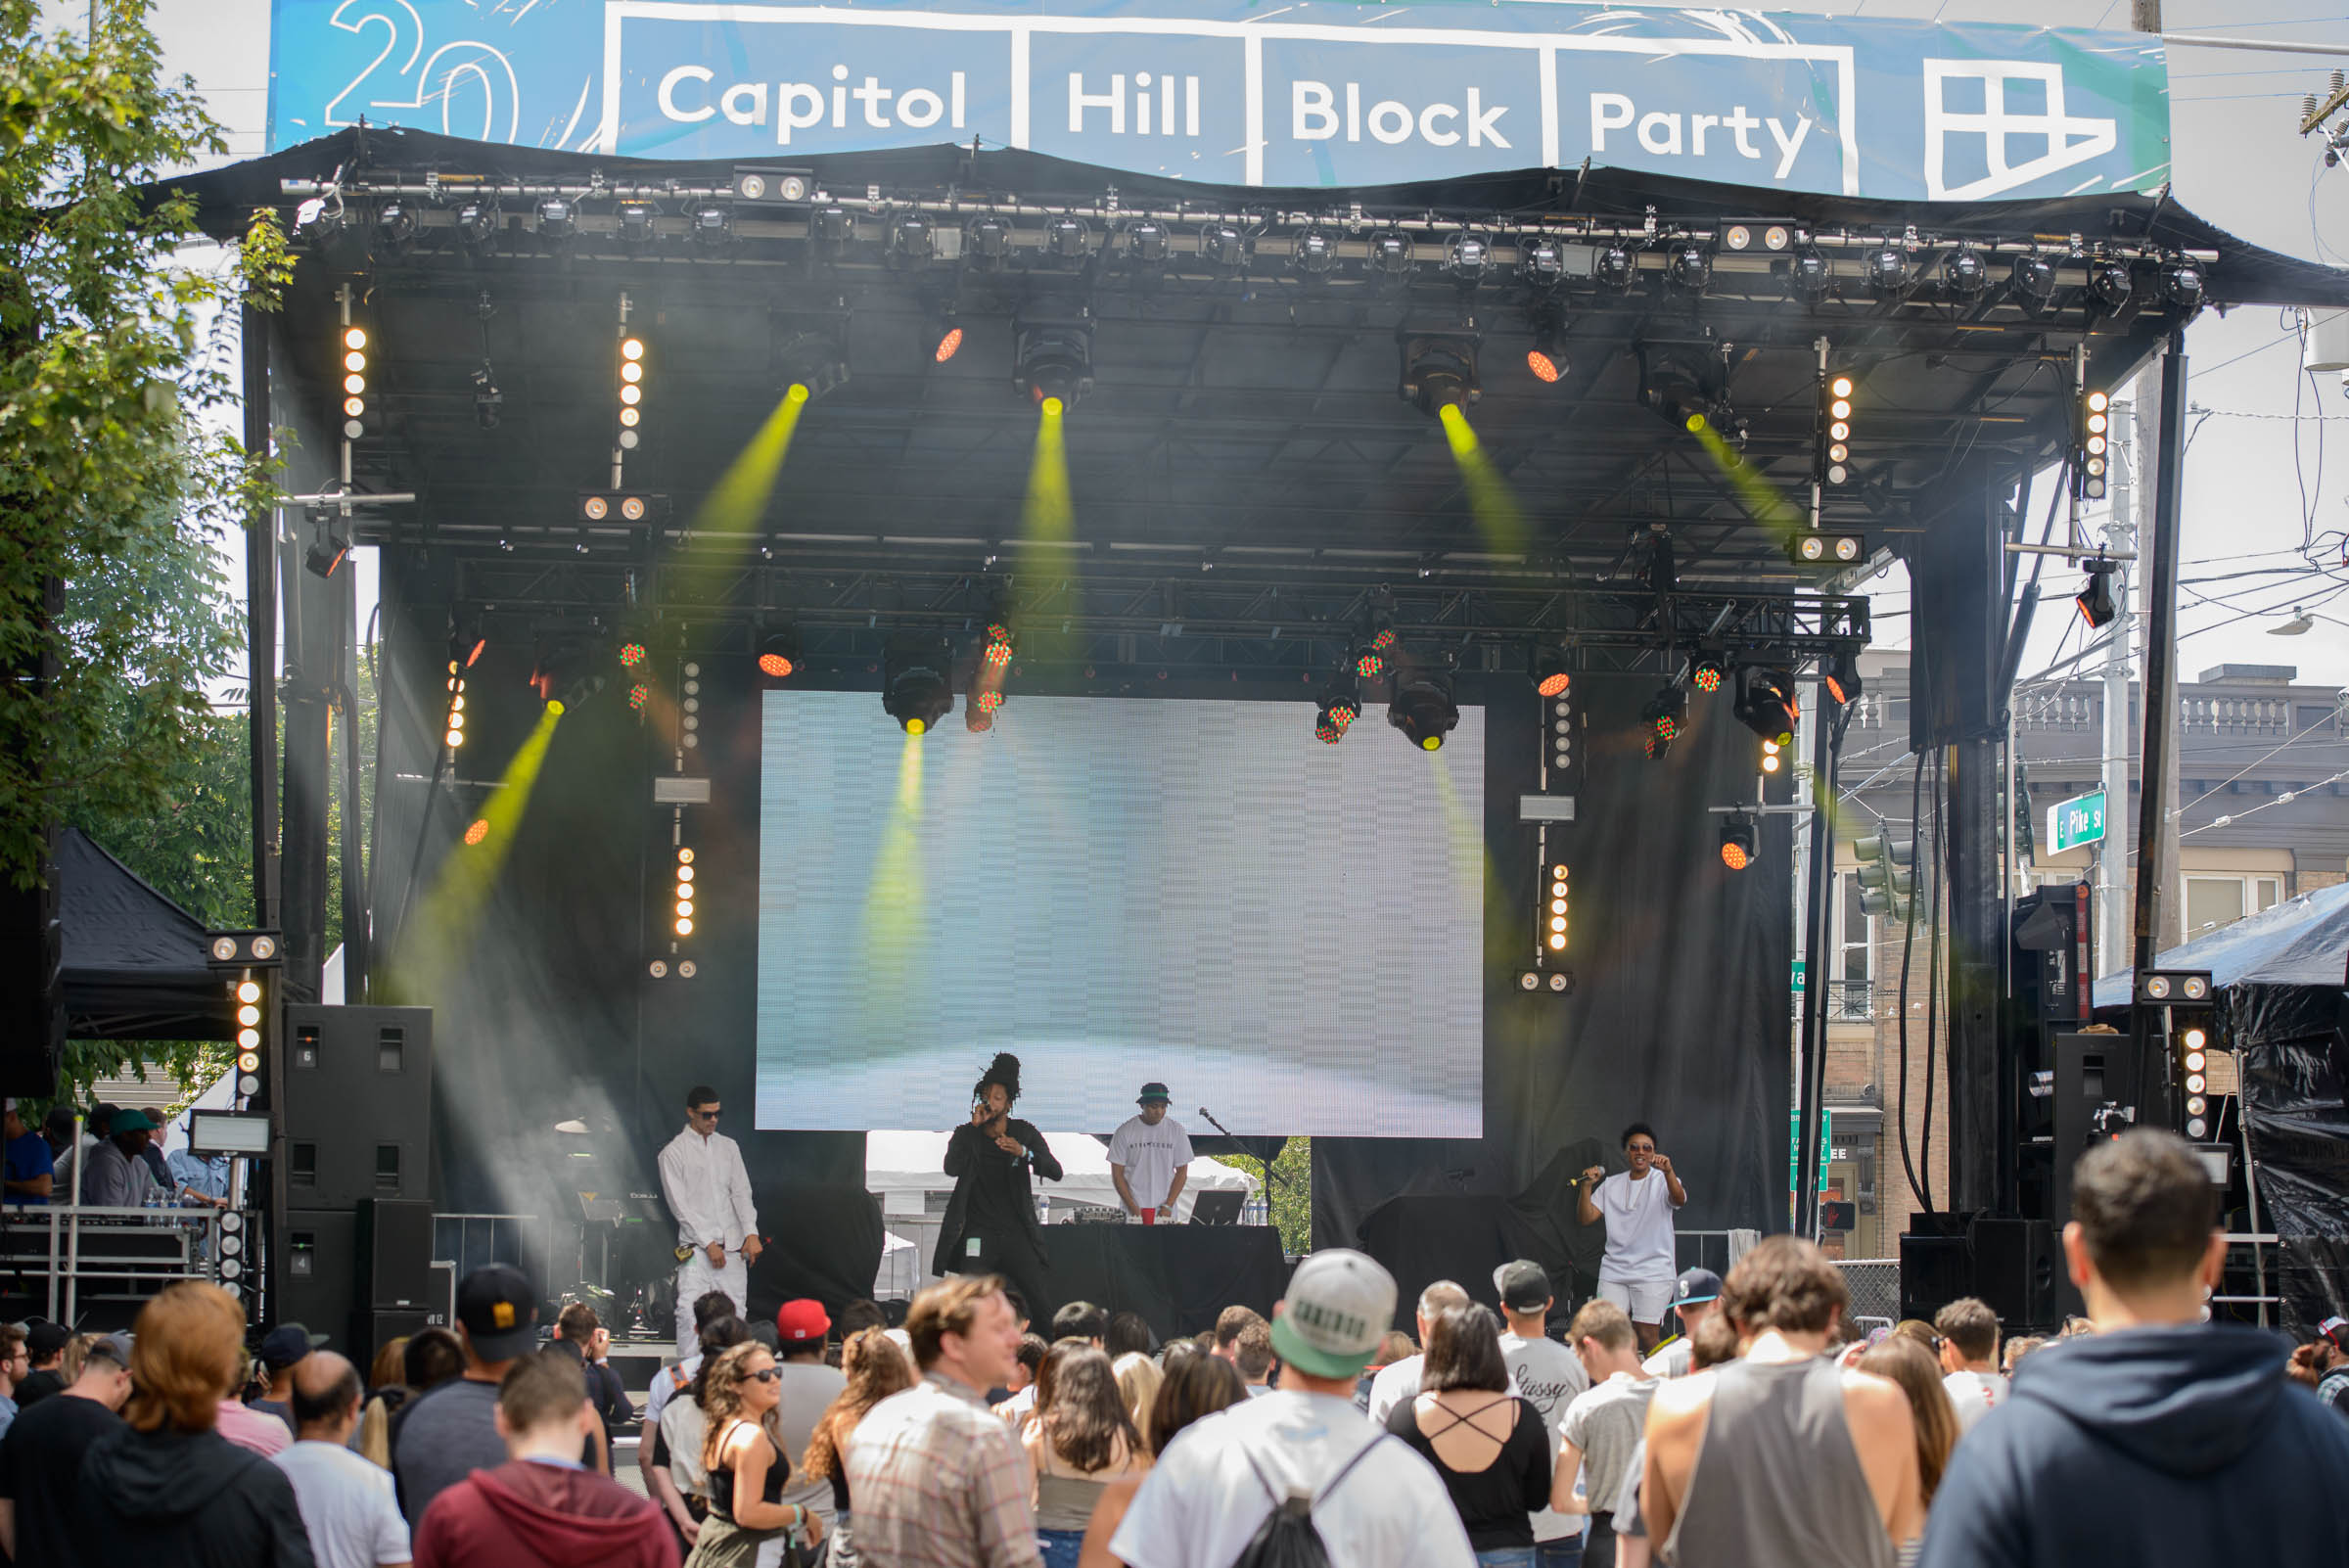 Capitol Hill Block Party 2016